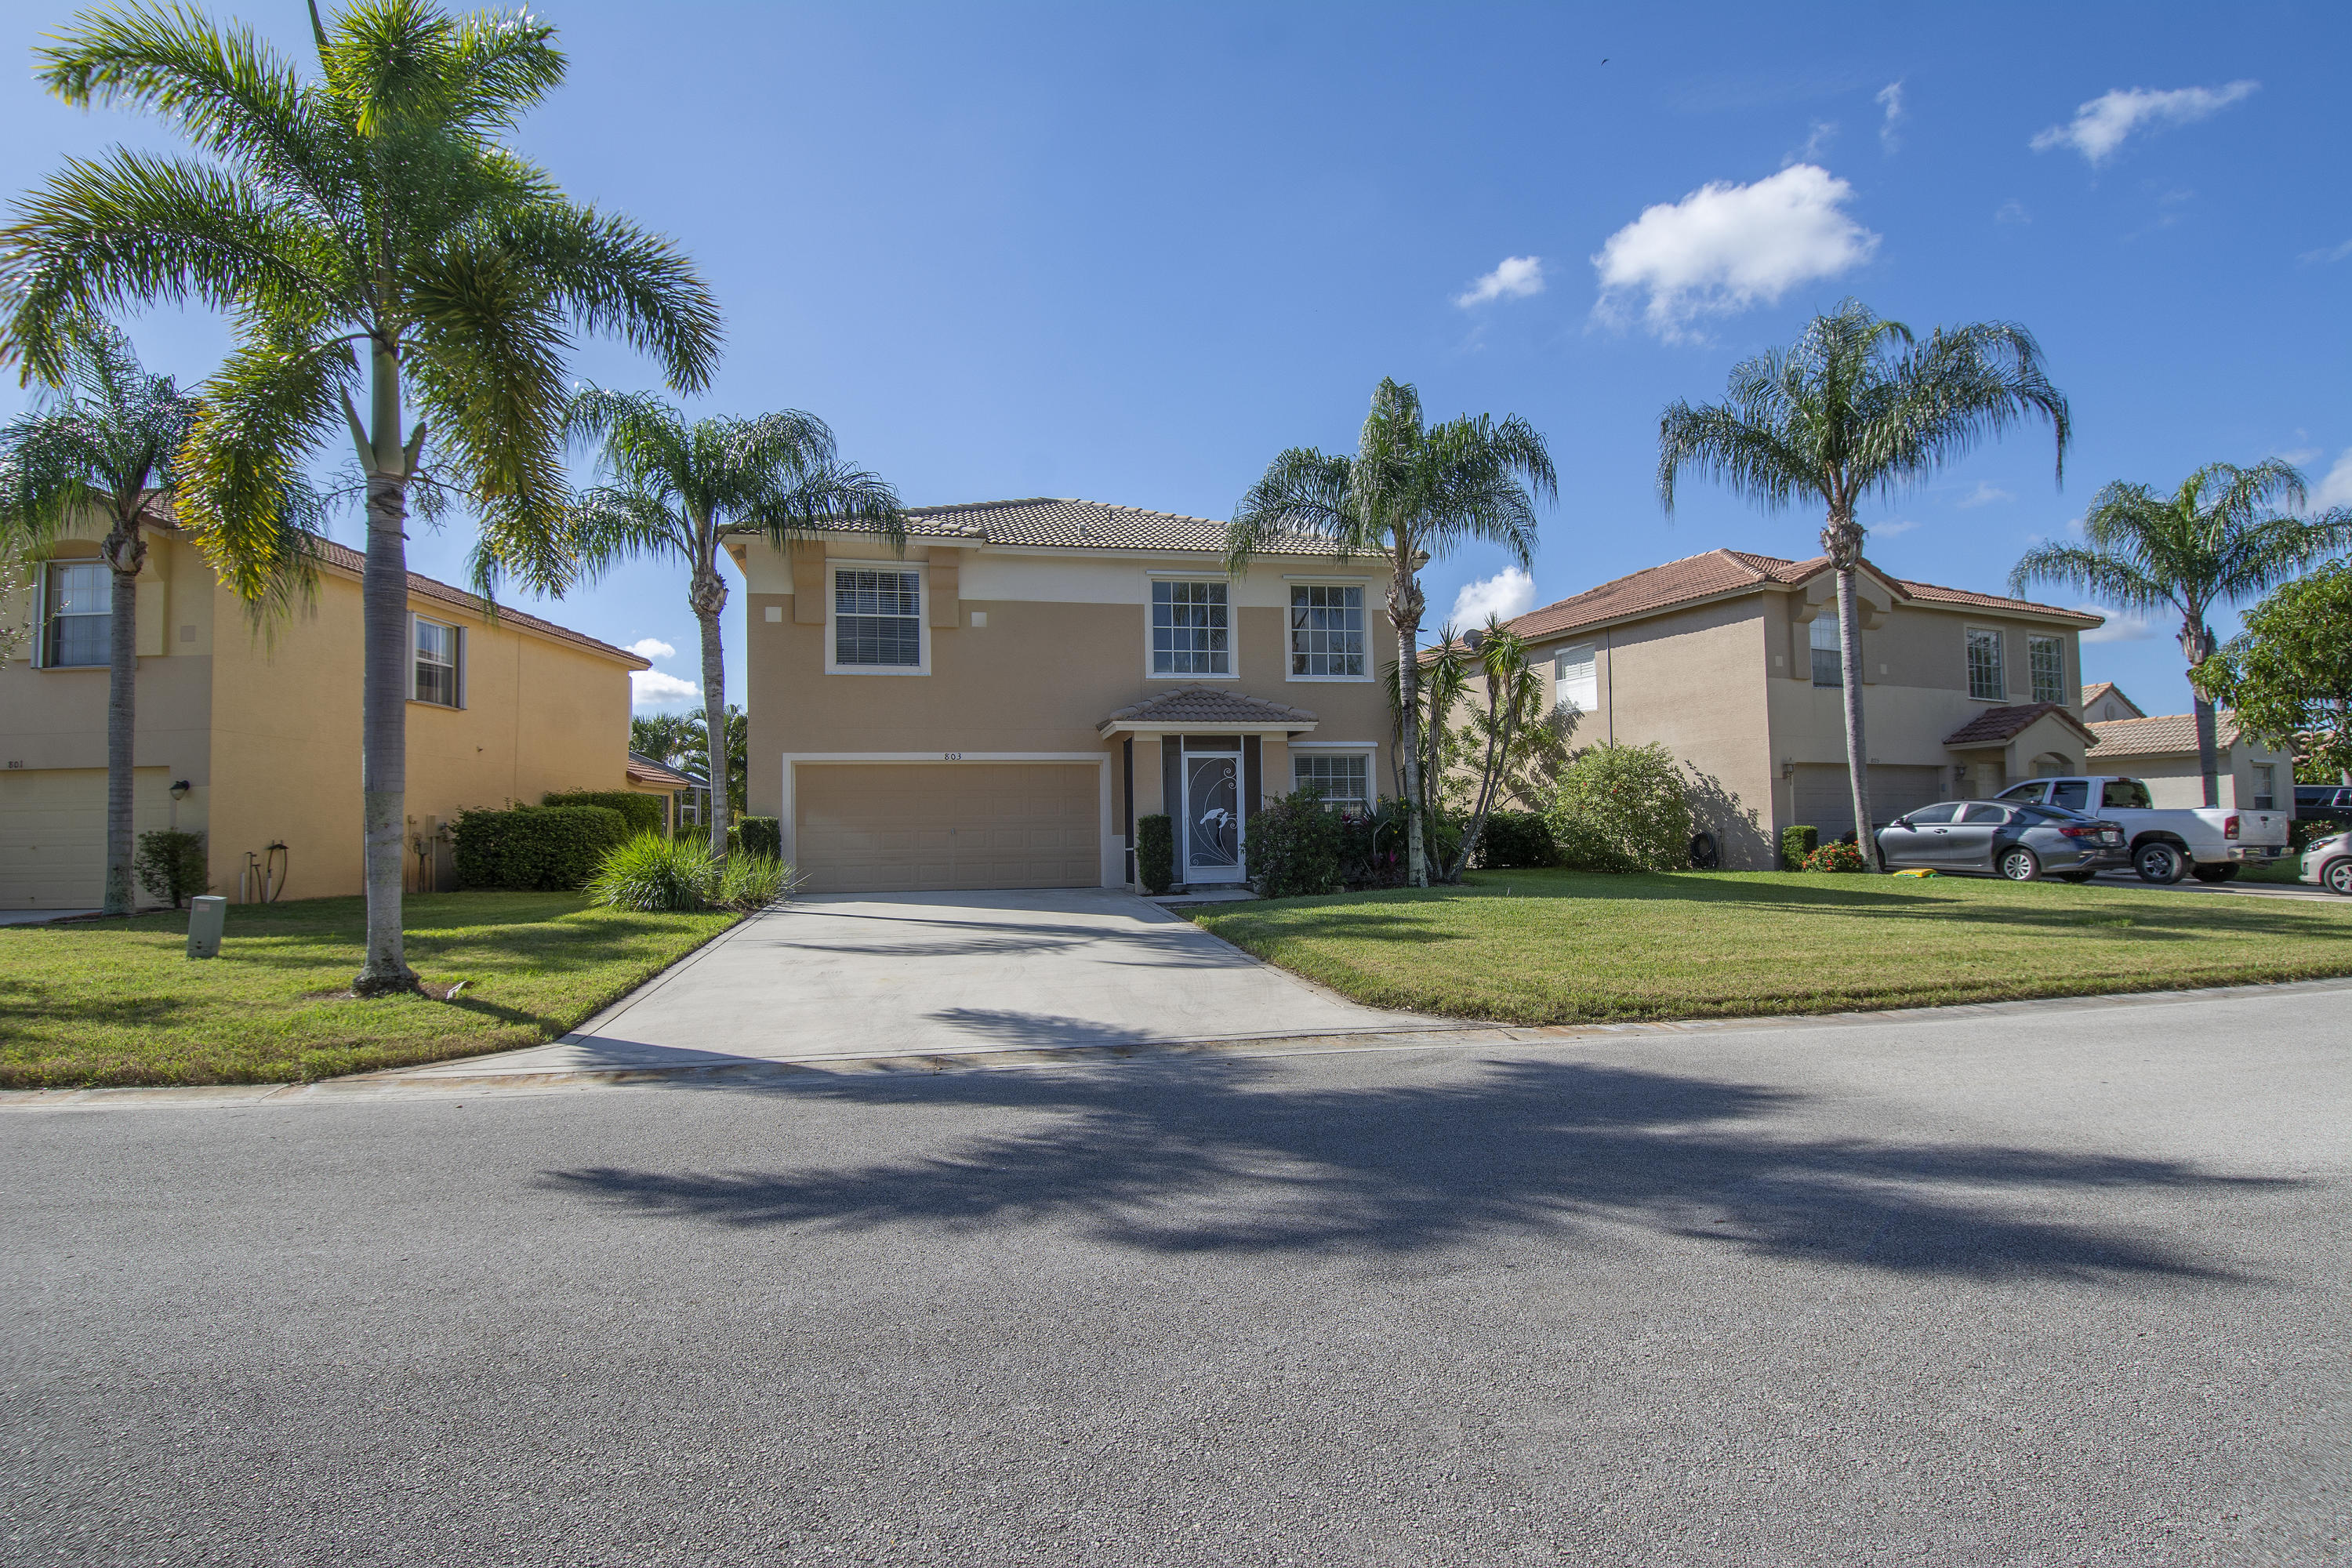 803 Nw Greenwich Court, Port Saint Lucie, FL 34983